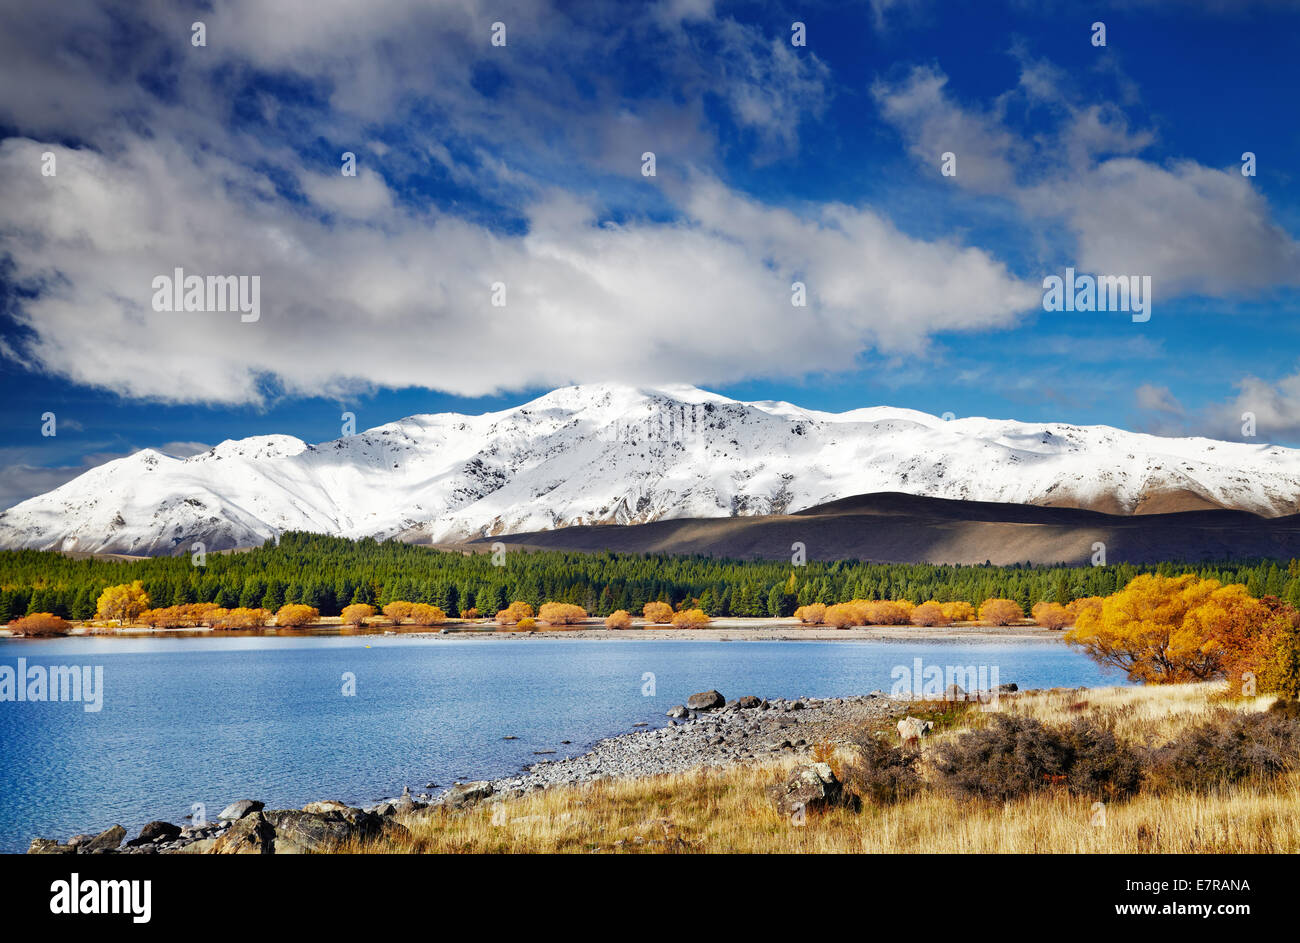 Paysage de montagne, Lake Tekapo, Nouvelle-Zélande Photo Stock